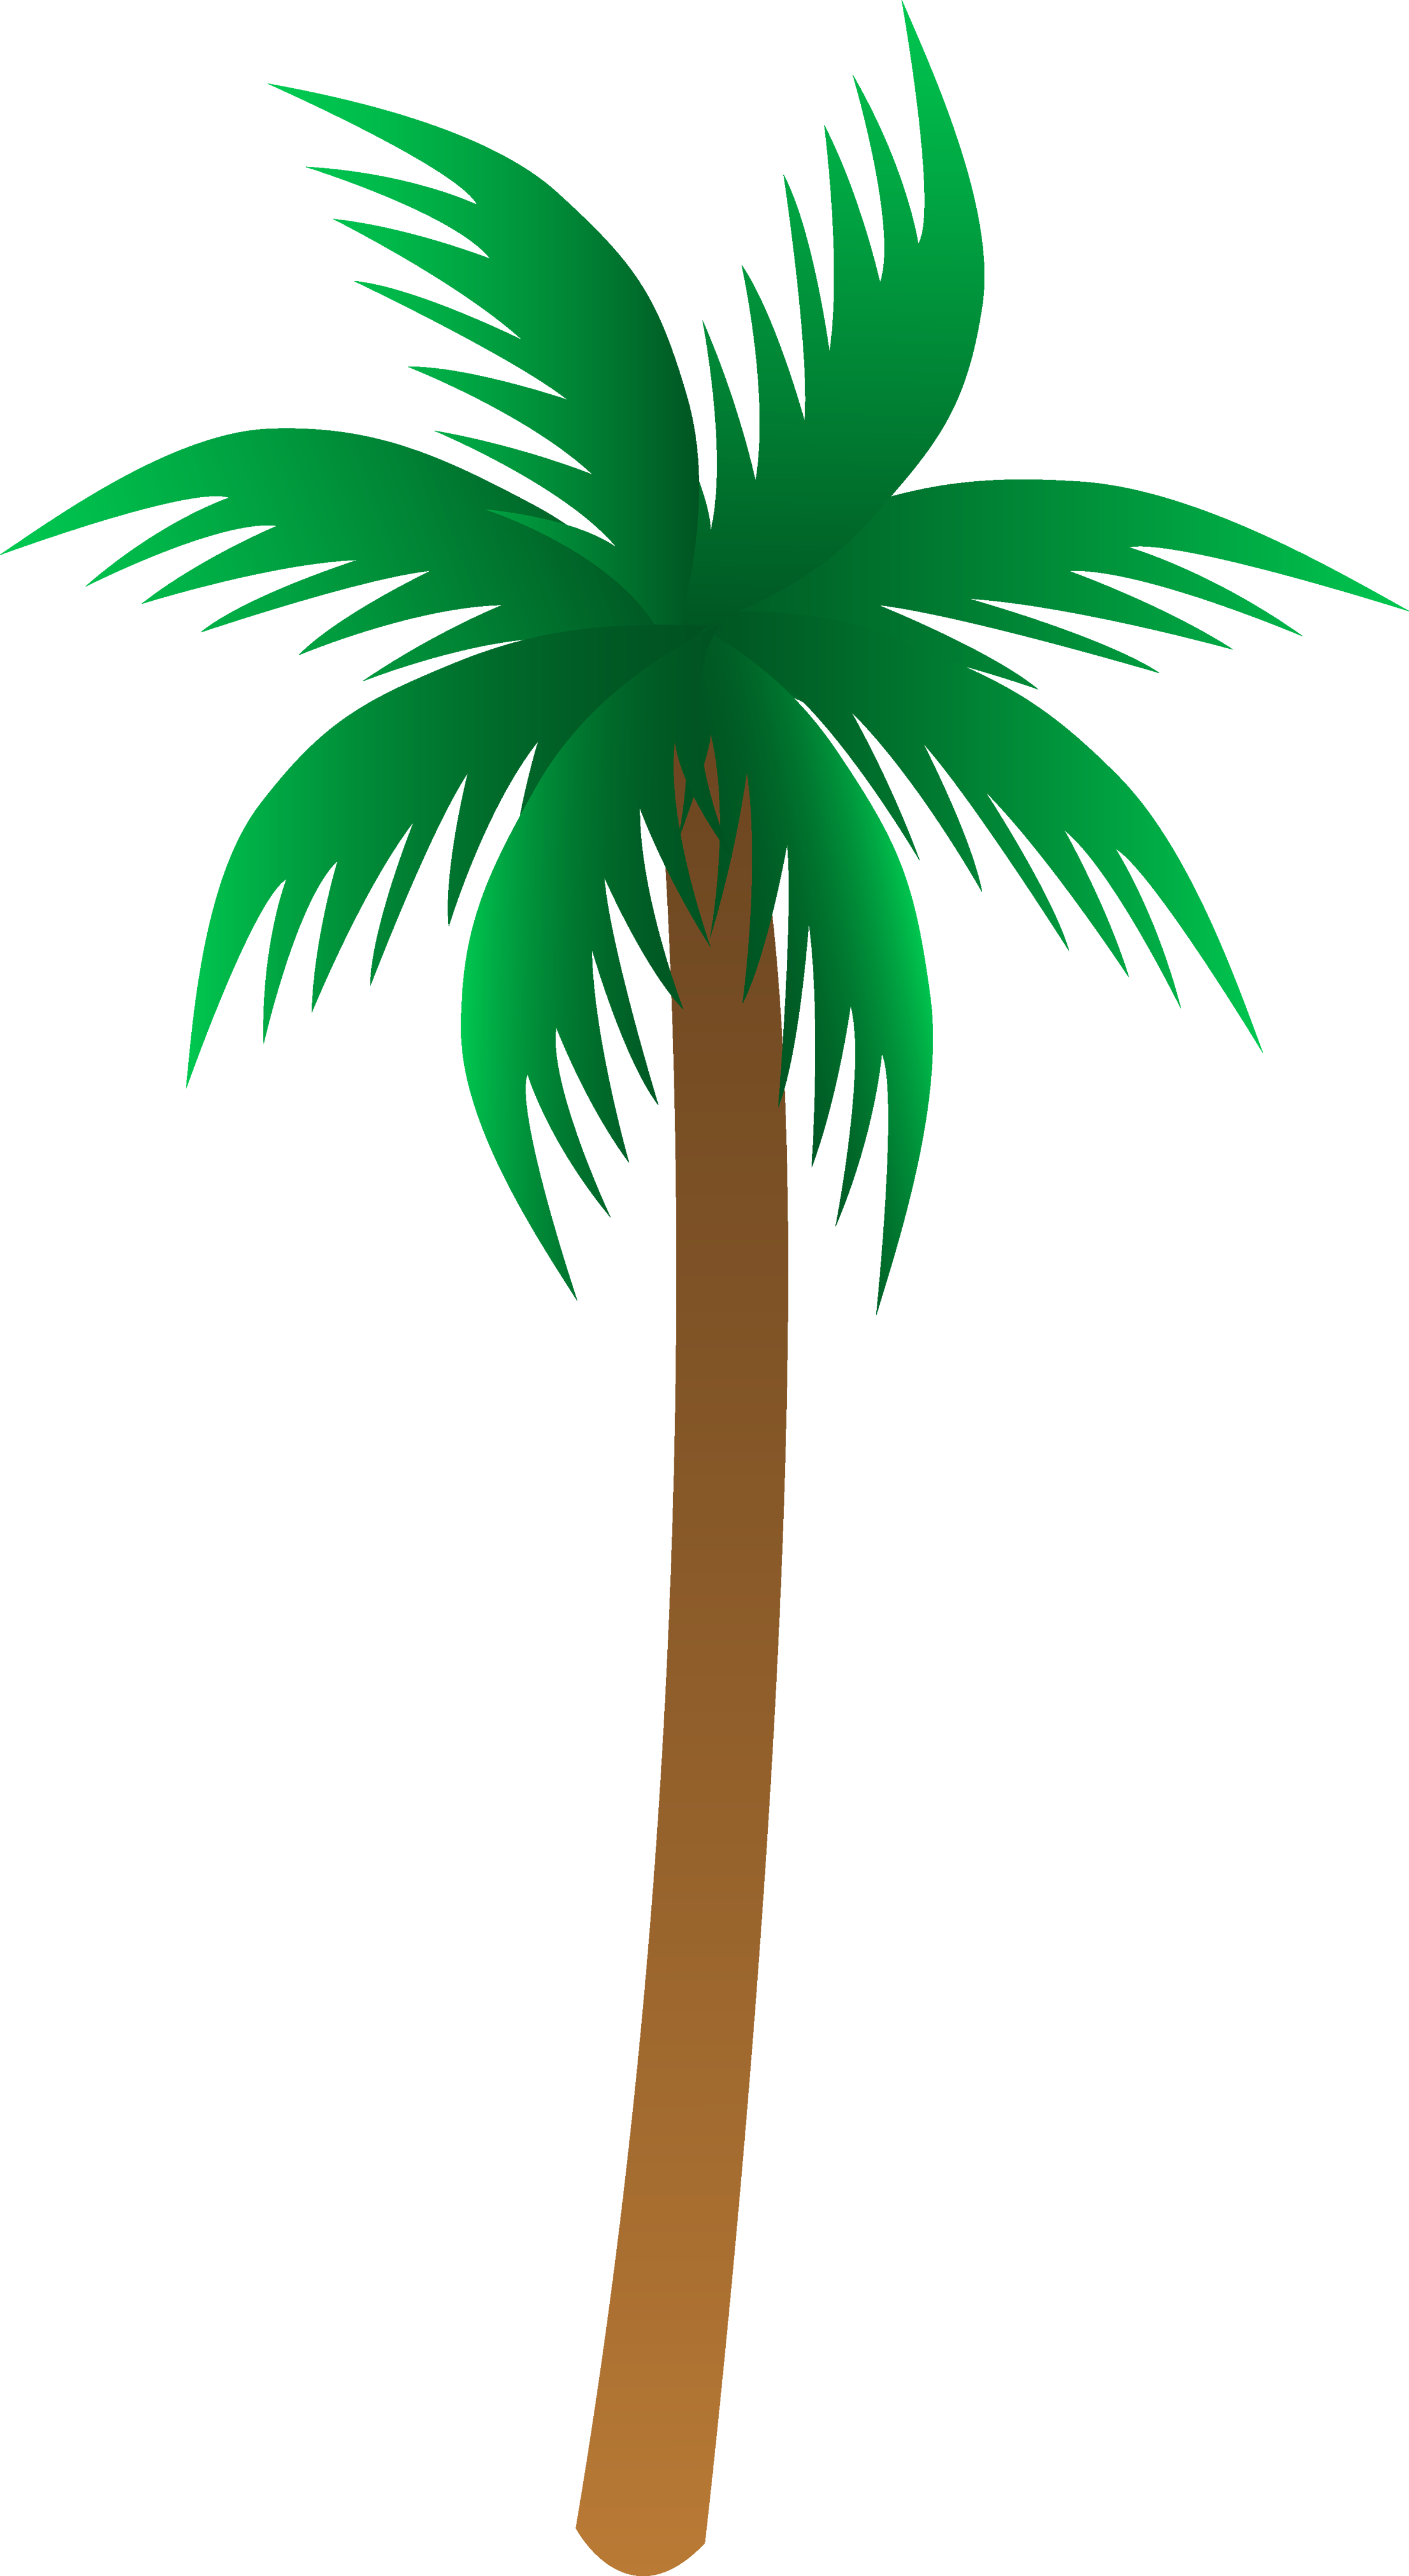 Coconut palm tree clipart clip art library stock Palm tree PNG images, download free pictures clip art library stock